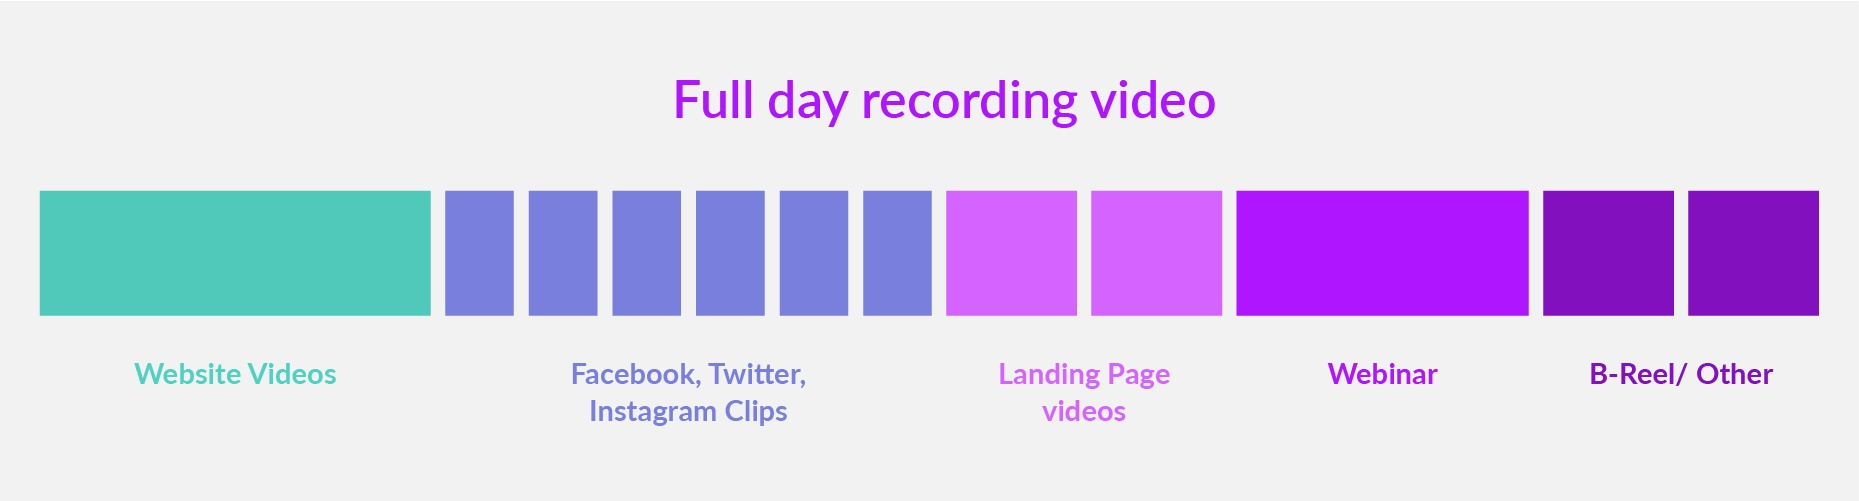 Breaking down a full day of video recording